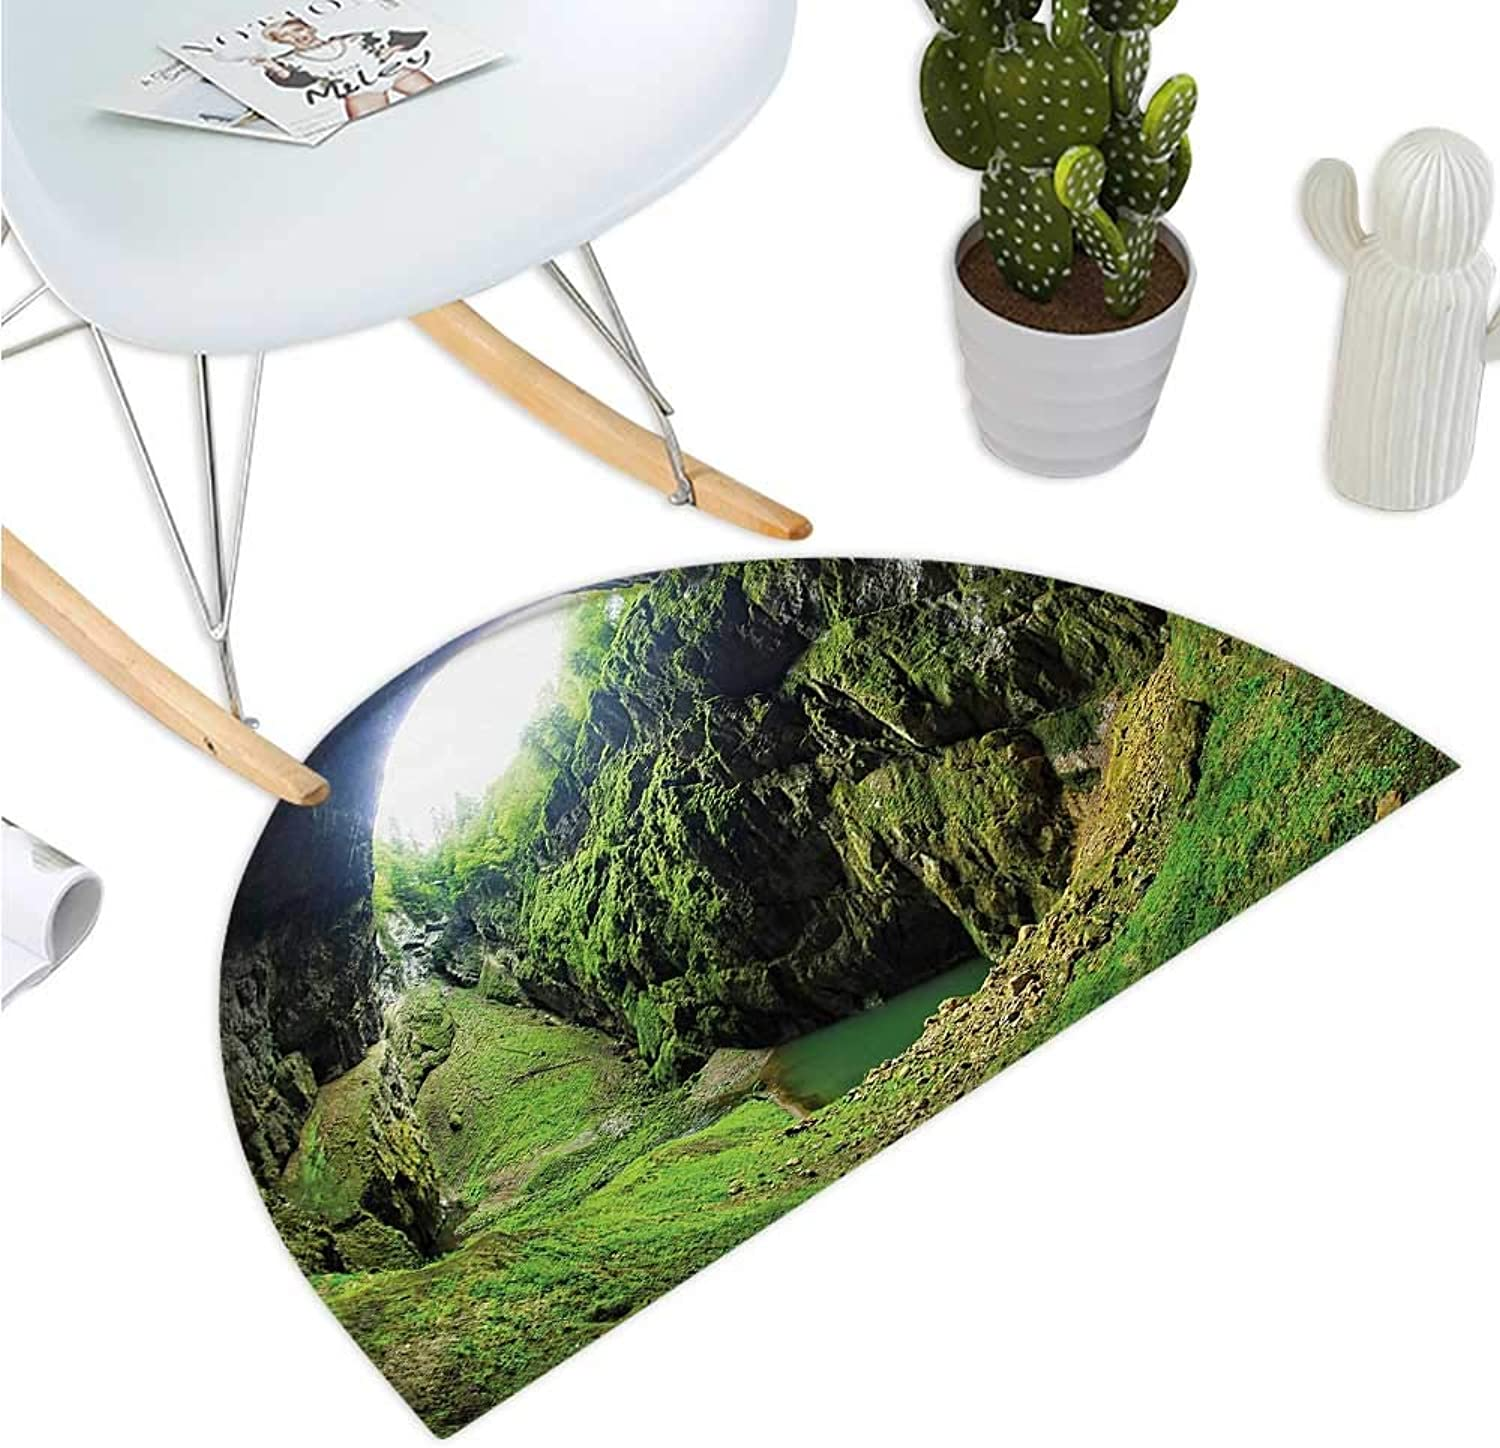 Natural Cave Semicircular Cushion Punkevni Cave in Czech Republic European Geological Formation Myst Hole Landscape Entry Door Mat H 47.2  xD 70.8  Green